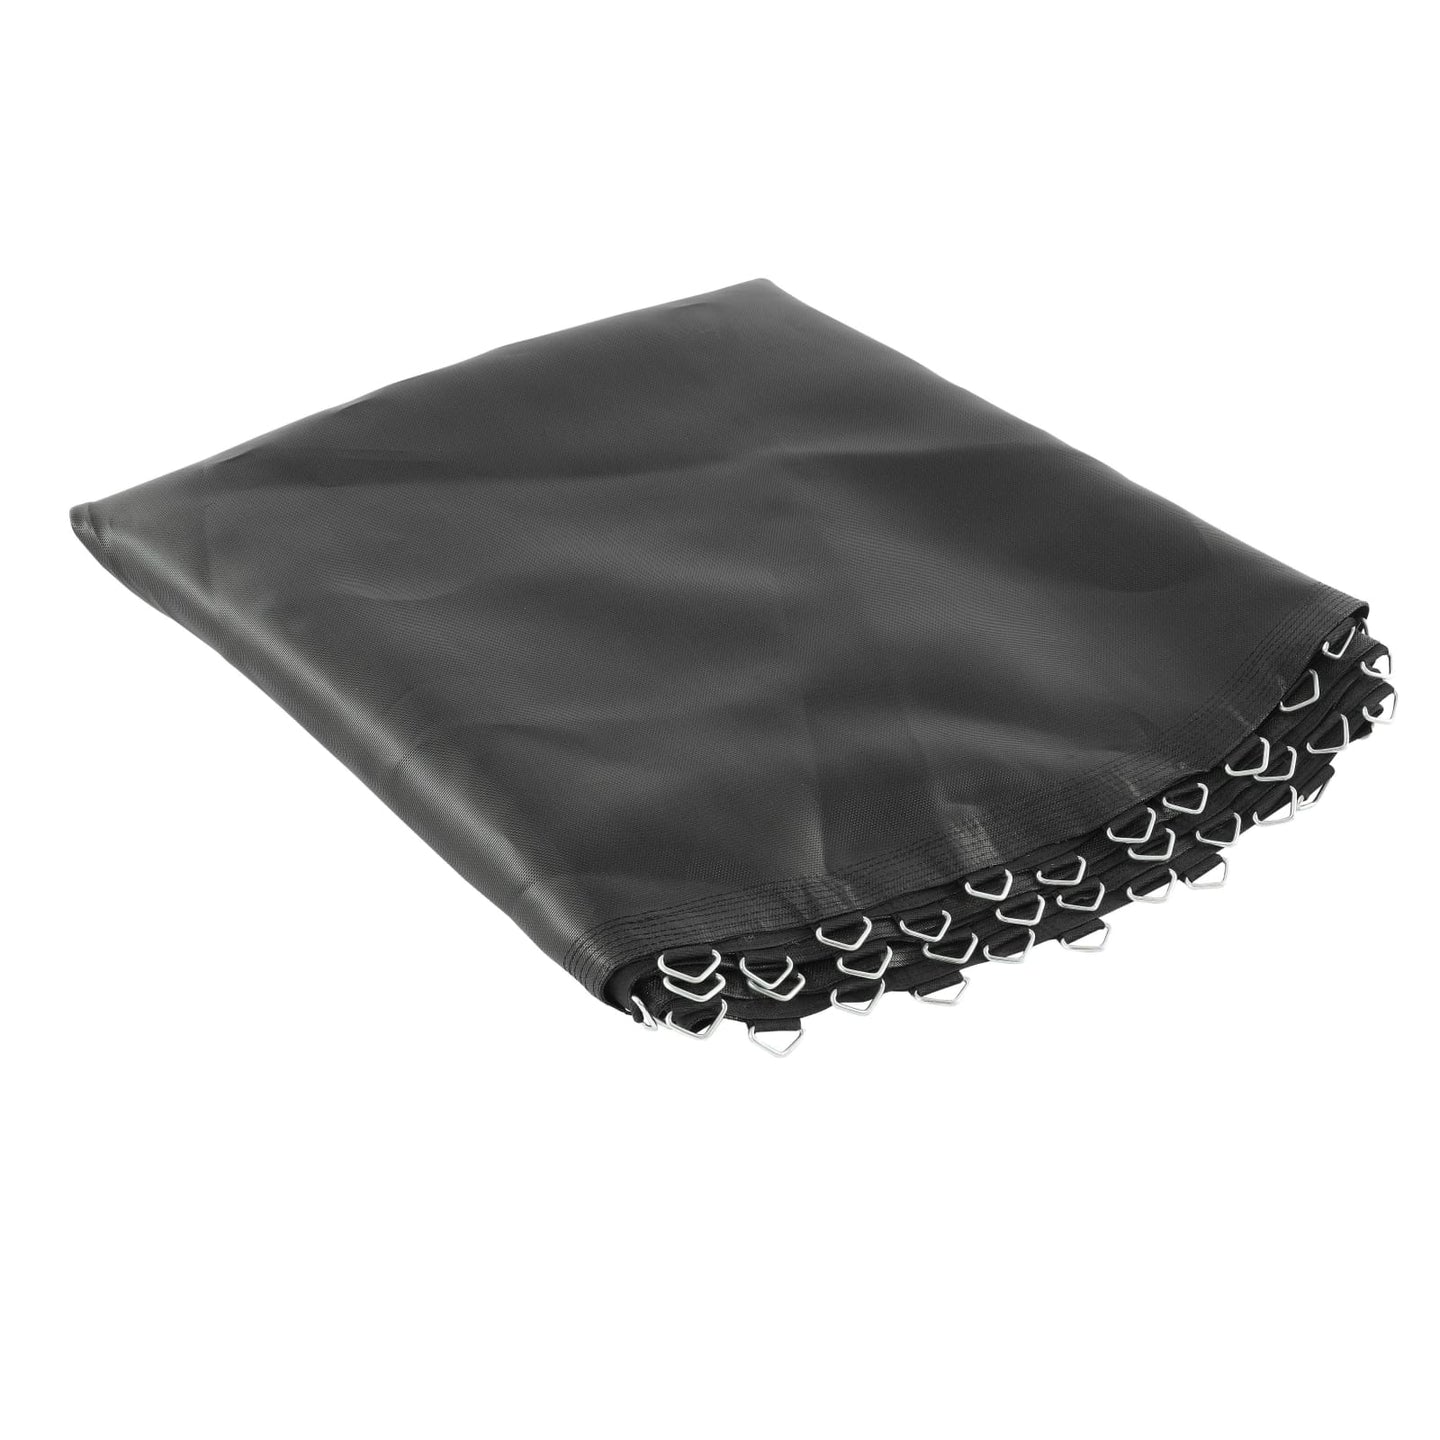 Upper Bounce Trampoline Replacement Jumping Mat Fits For 15 Ft. Round Frames W/ 100 V-Rings 7 Springs - Trampoline Replacements